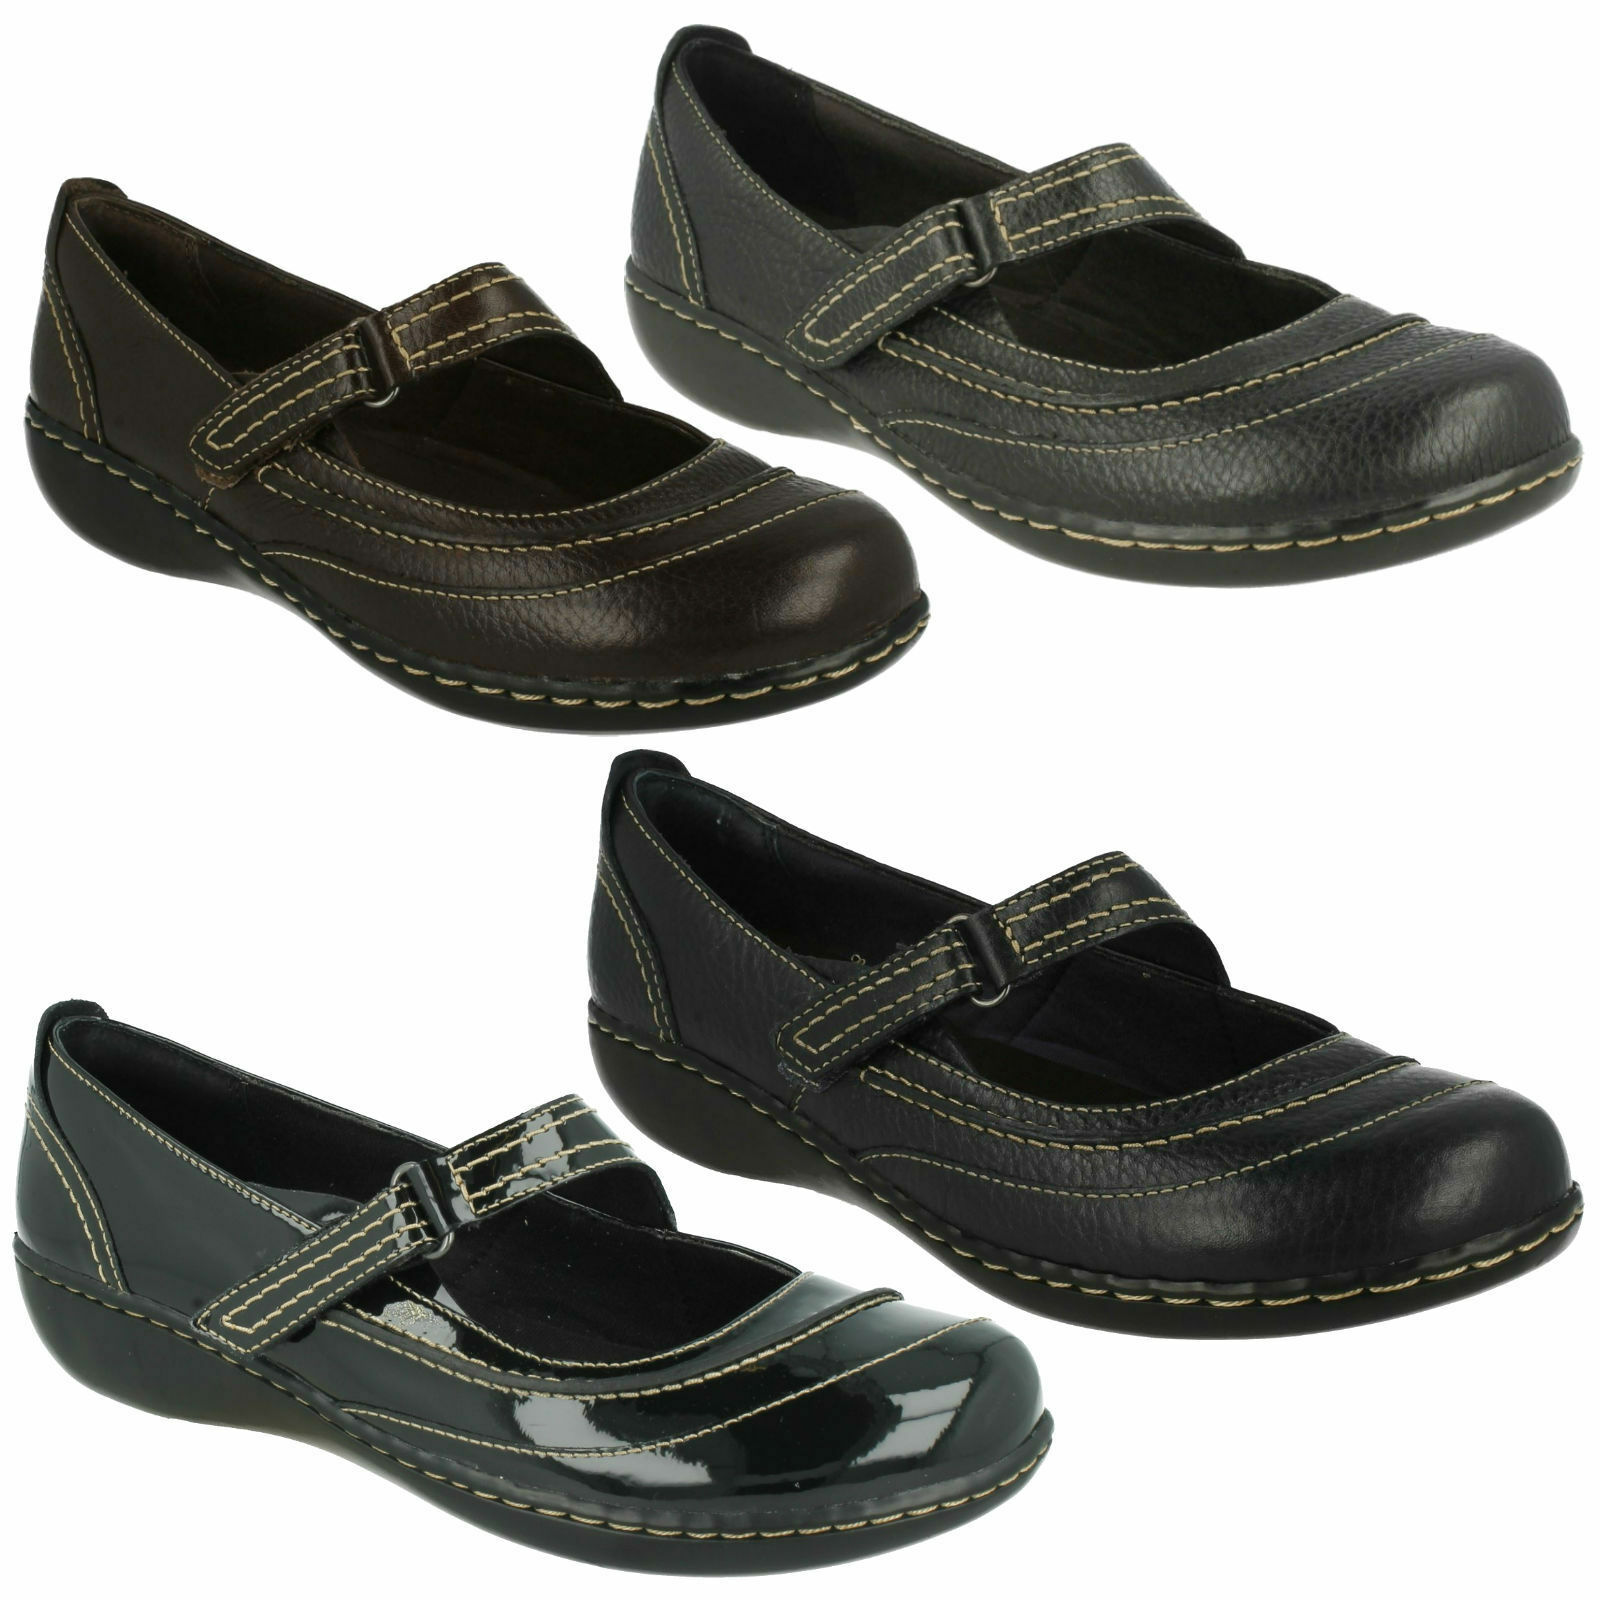 EMBRACE CHAT LADIES CLARKS LEATHER PATENT RIPTAPE MARY JANE CASUAL FLAT scarpe